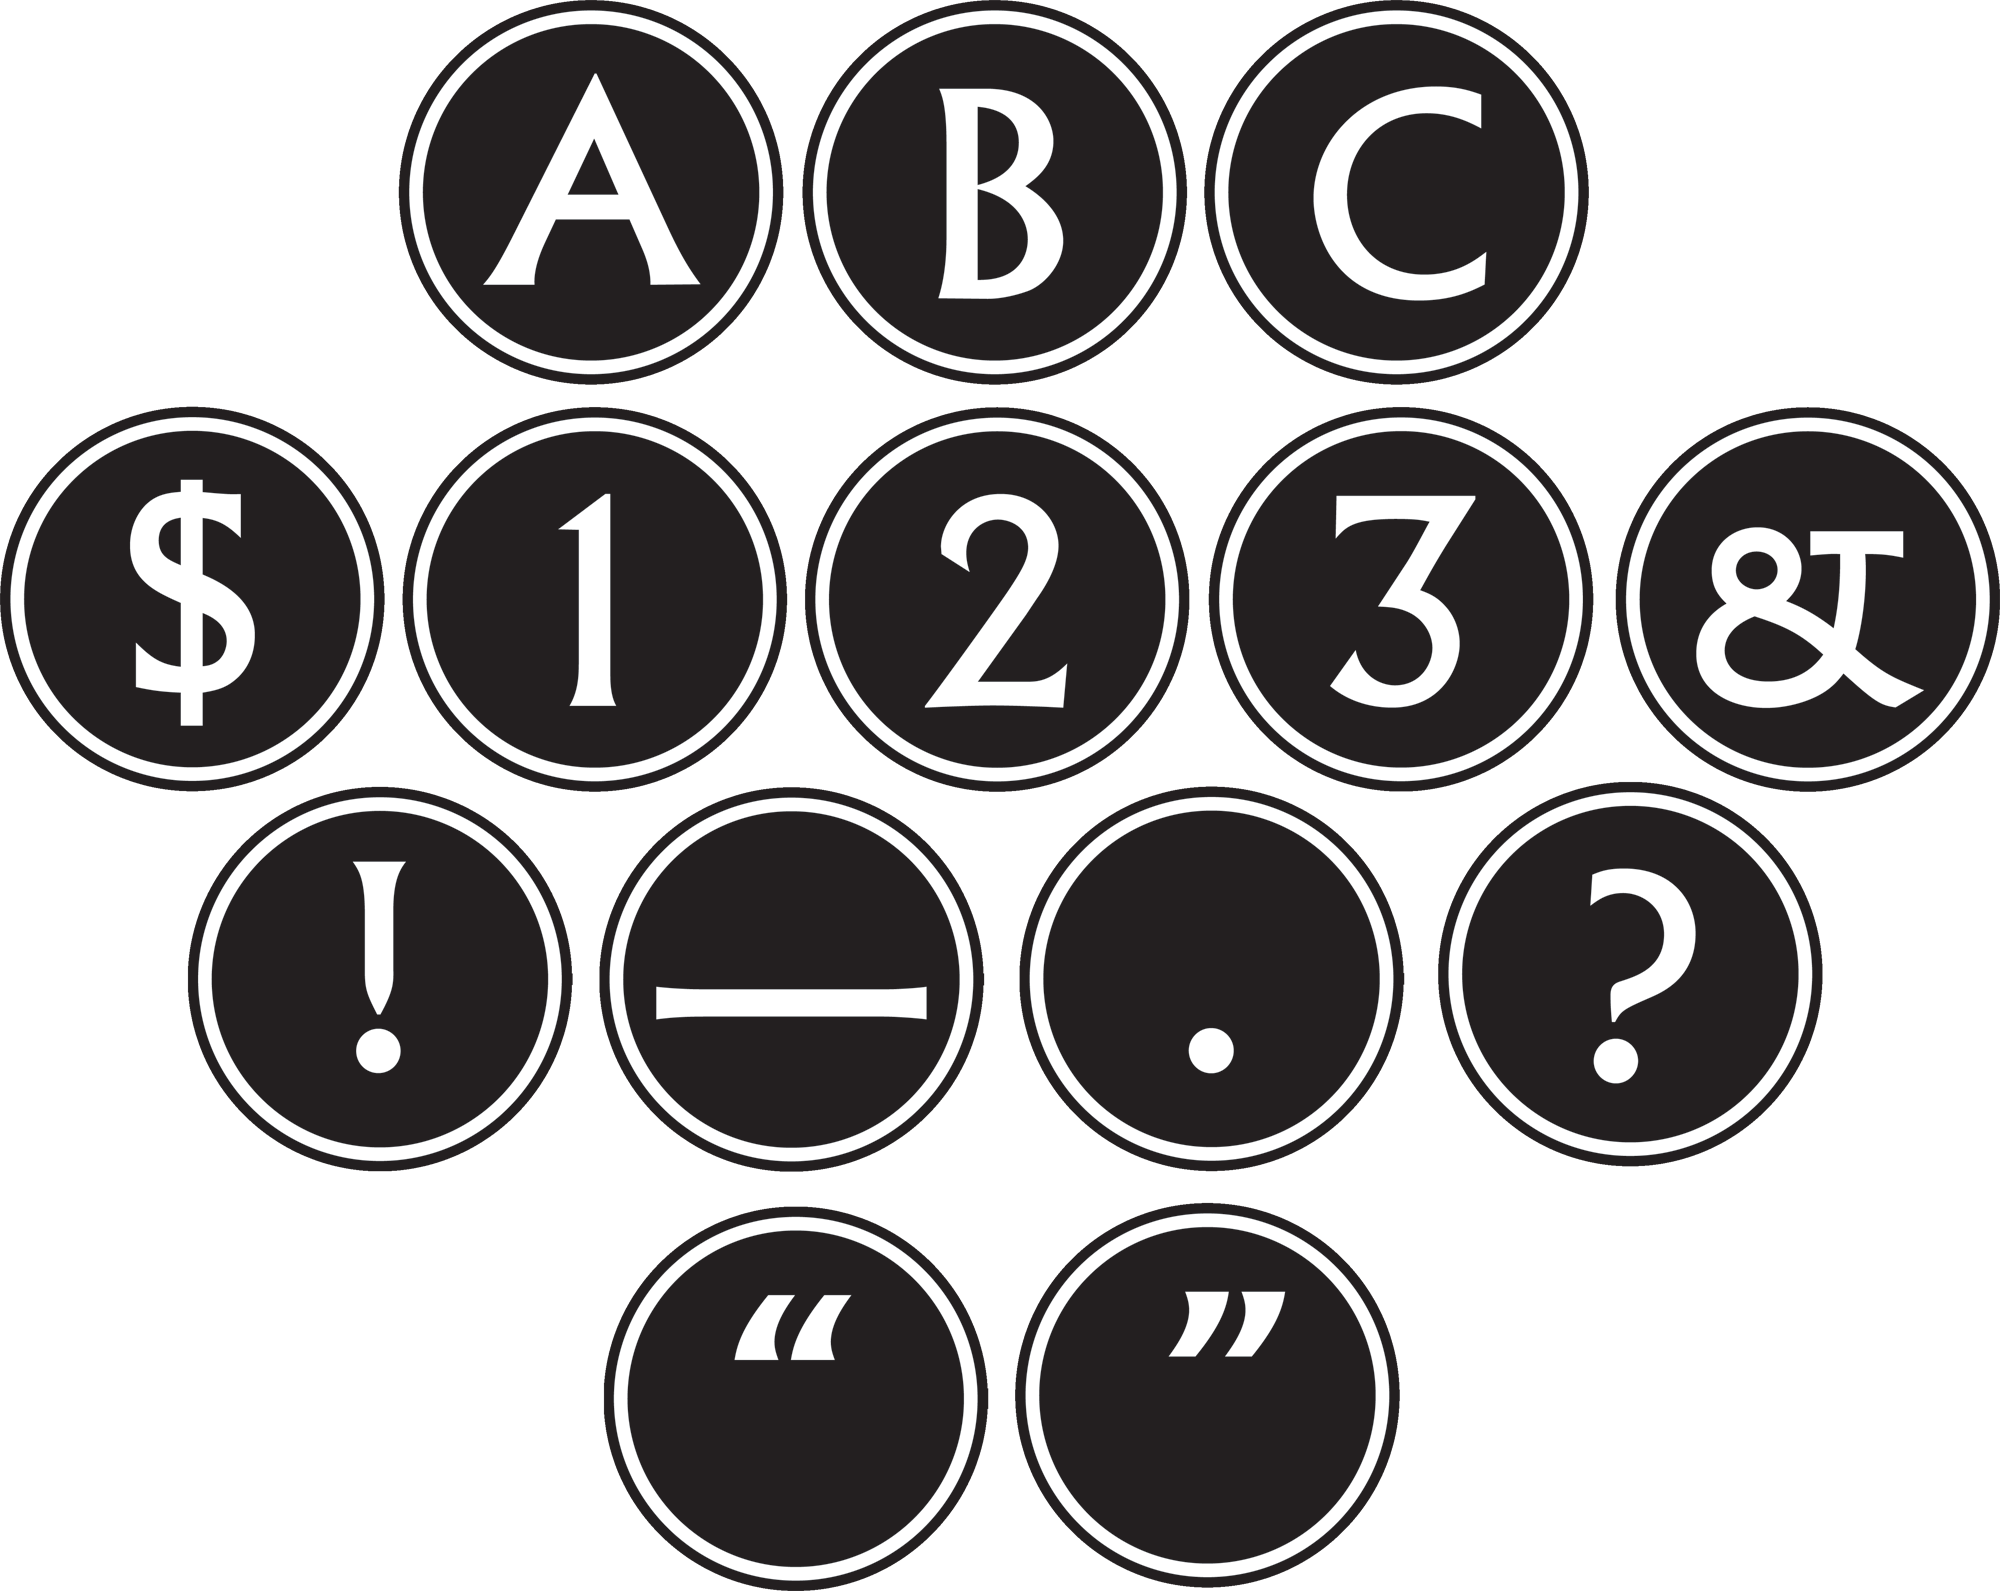 Big Bold Black & White Circle Letters - Letters In Black Circle (2000x1591), Png Download